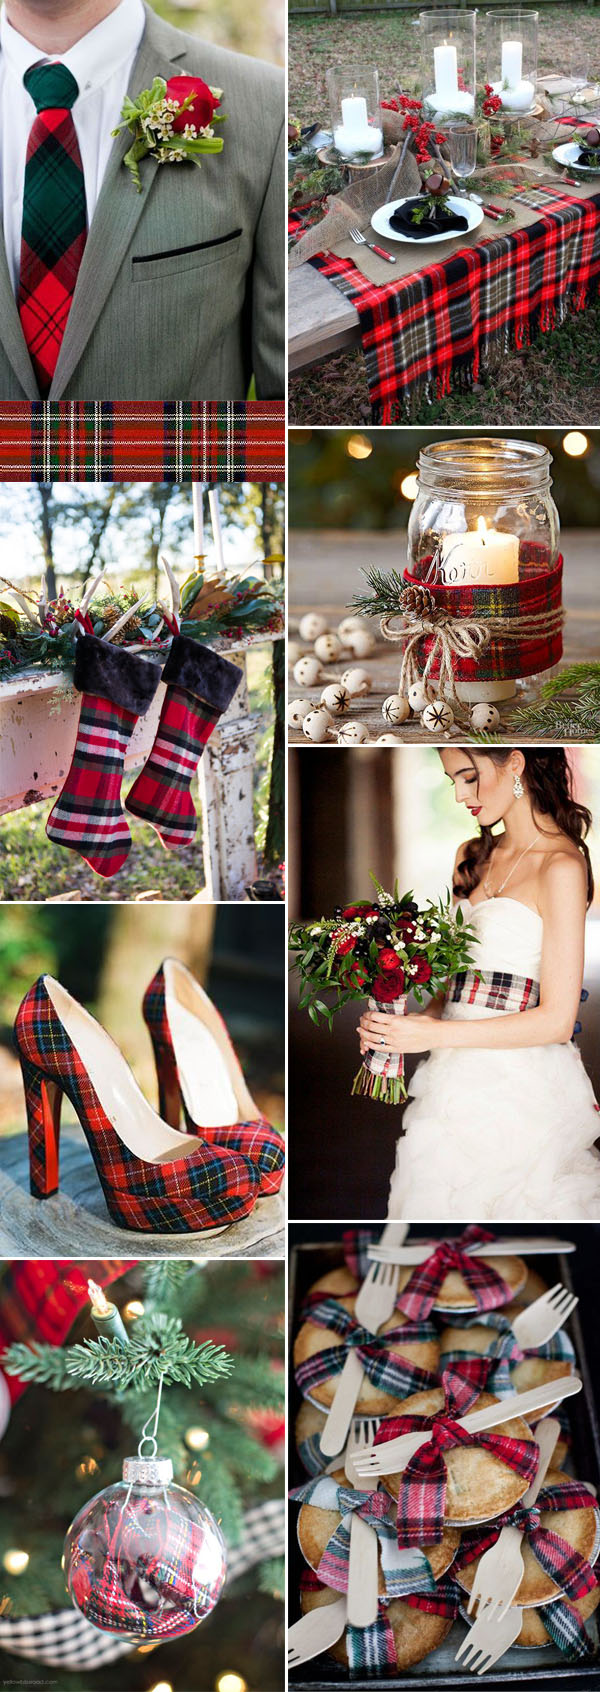 plaid holiday inspired wedding ideas for winter